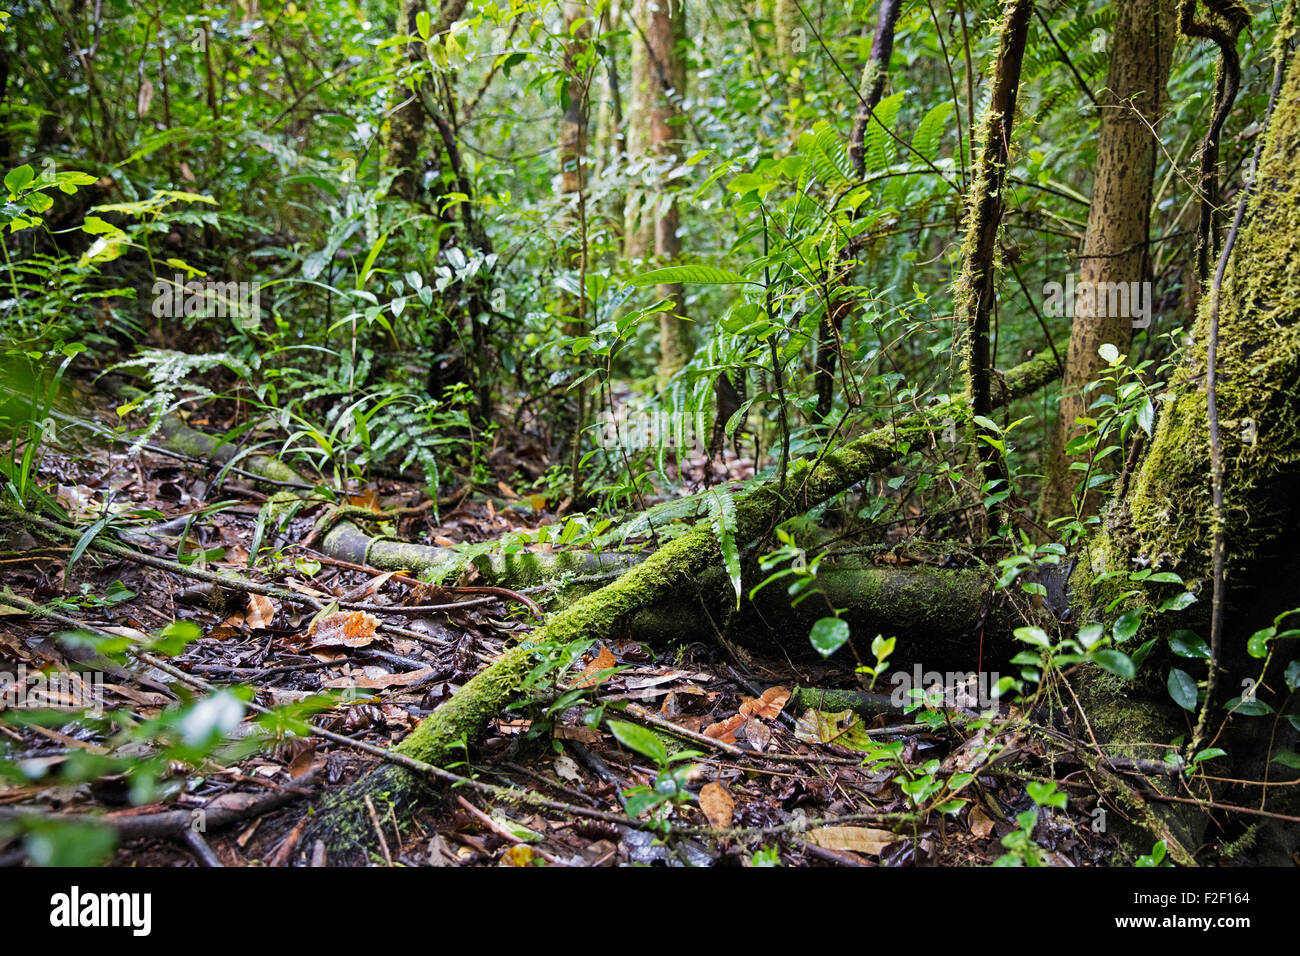 Lush vegetation in tropical rainforest of the Ranomafana National Park, Haute Matsiatra, Madagascar, Southeast Africa - Stock Image